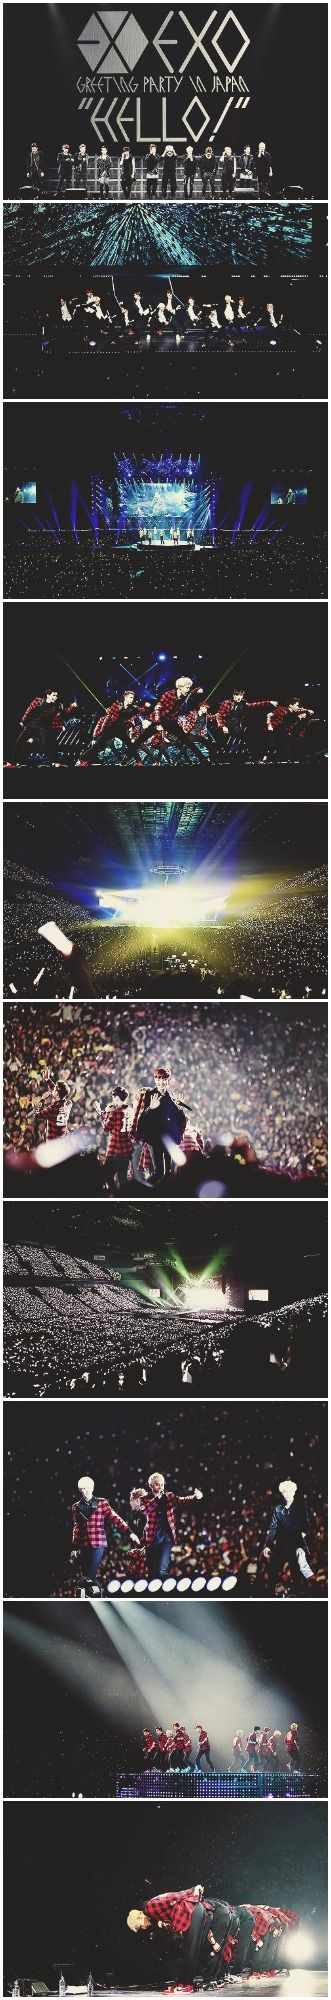 """EXO - """"Hello!"""" Greeting Party in Japan"""